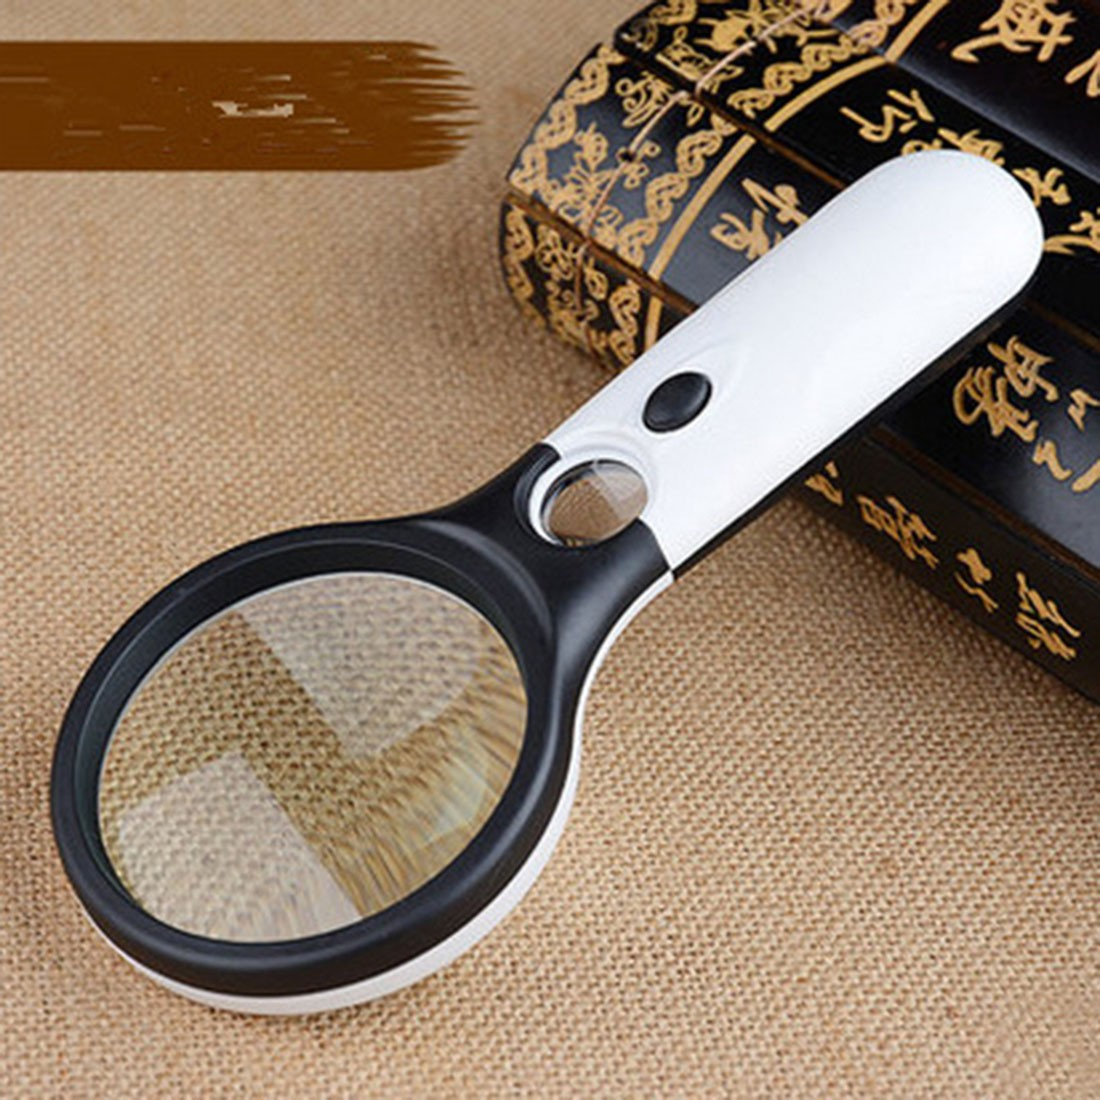 Handheld 3X 45X Illuminated Magnifier Microscope Magnifying Glass Aid Reading for Seniors loupe Jewelry Repair Tool With 3 LED Handheld 3X 45X Illuminated Magnifier Microscope Magnifying Glass Aid Reading for Seniors loupe Jewelry Repair Tool With 3 LED